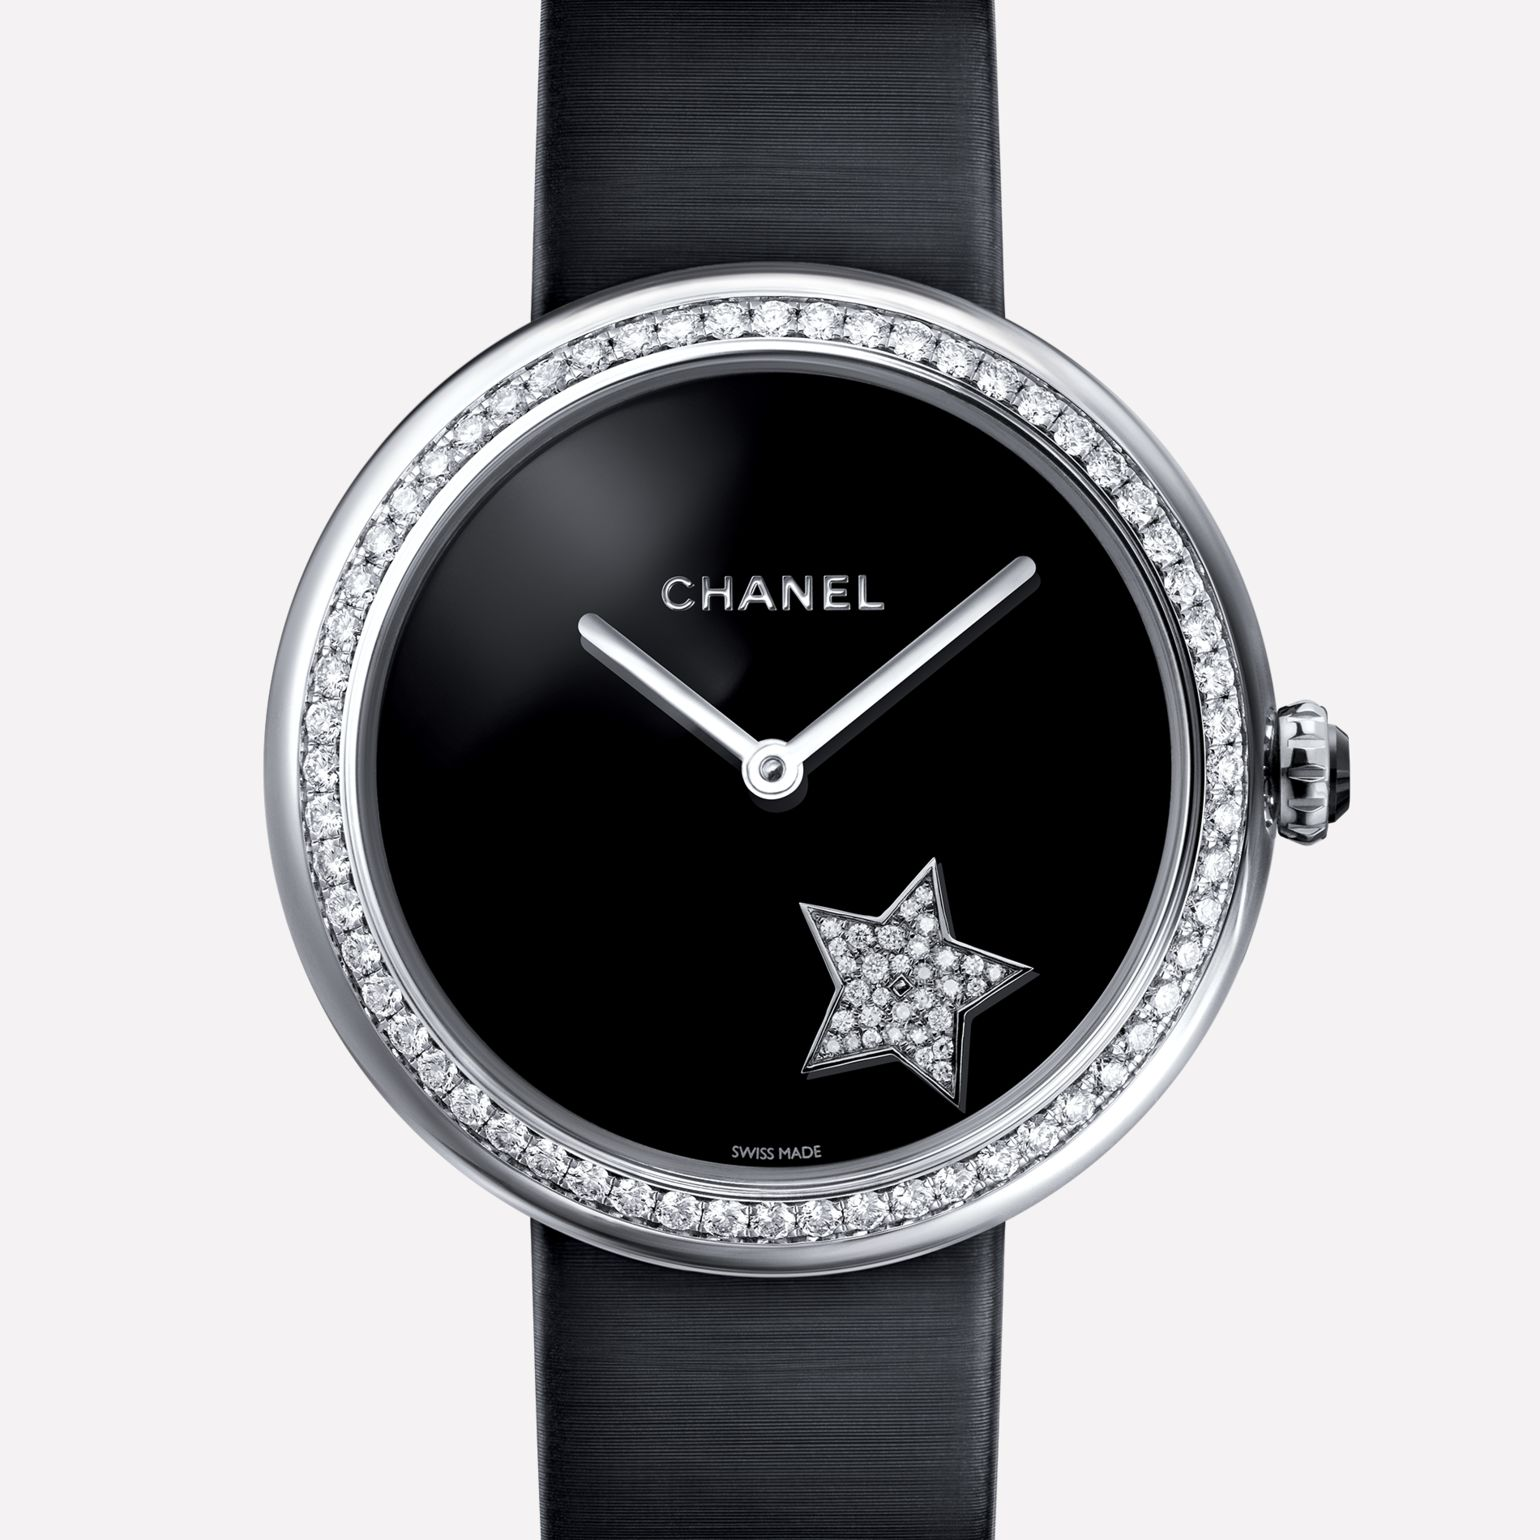 Mademoiselle Privé Turning comet set with diamonds